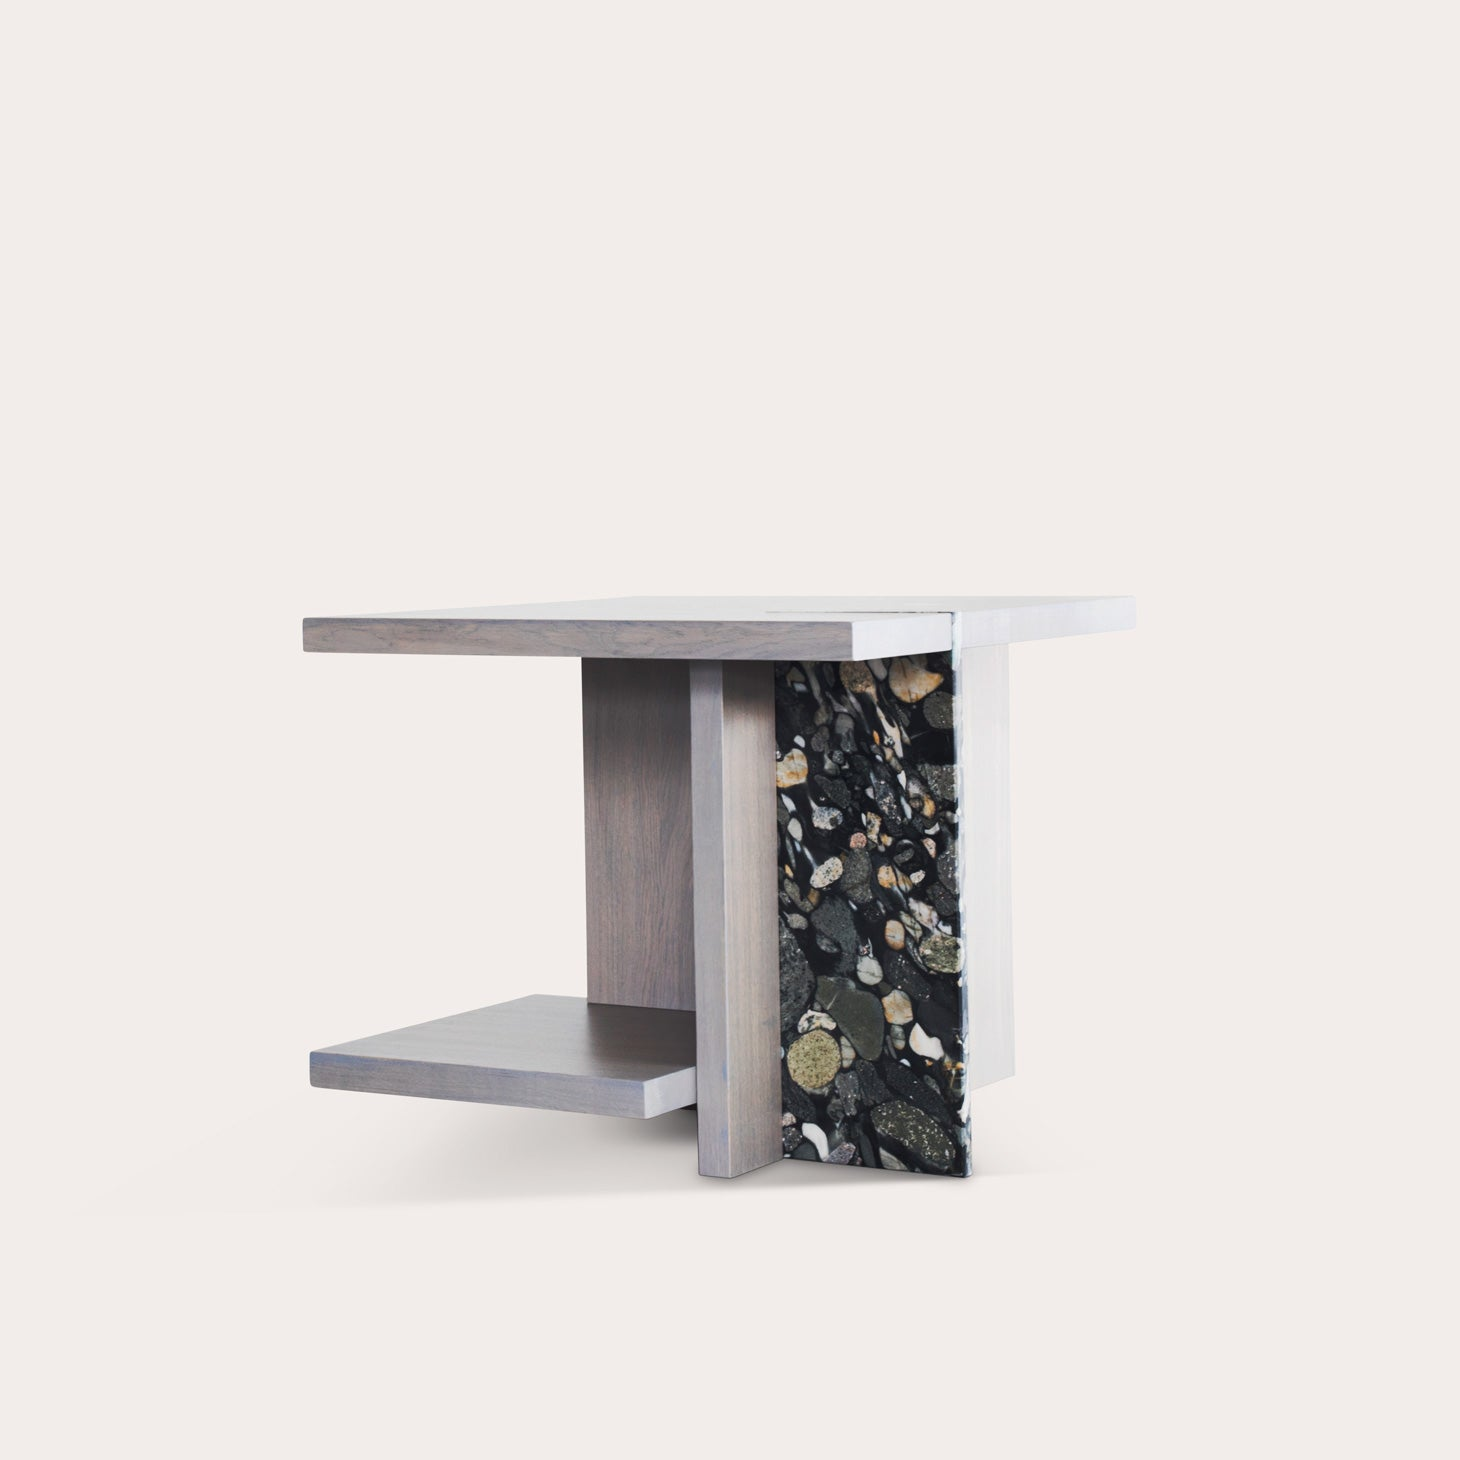 Stijl Tables Erjan Borren Designer Furniture Sku: 416-230-10269